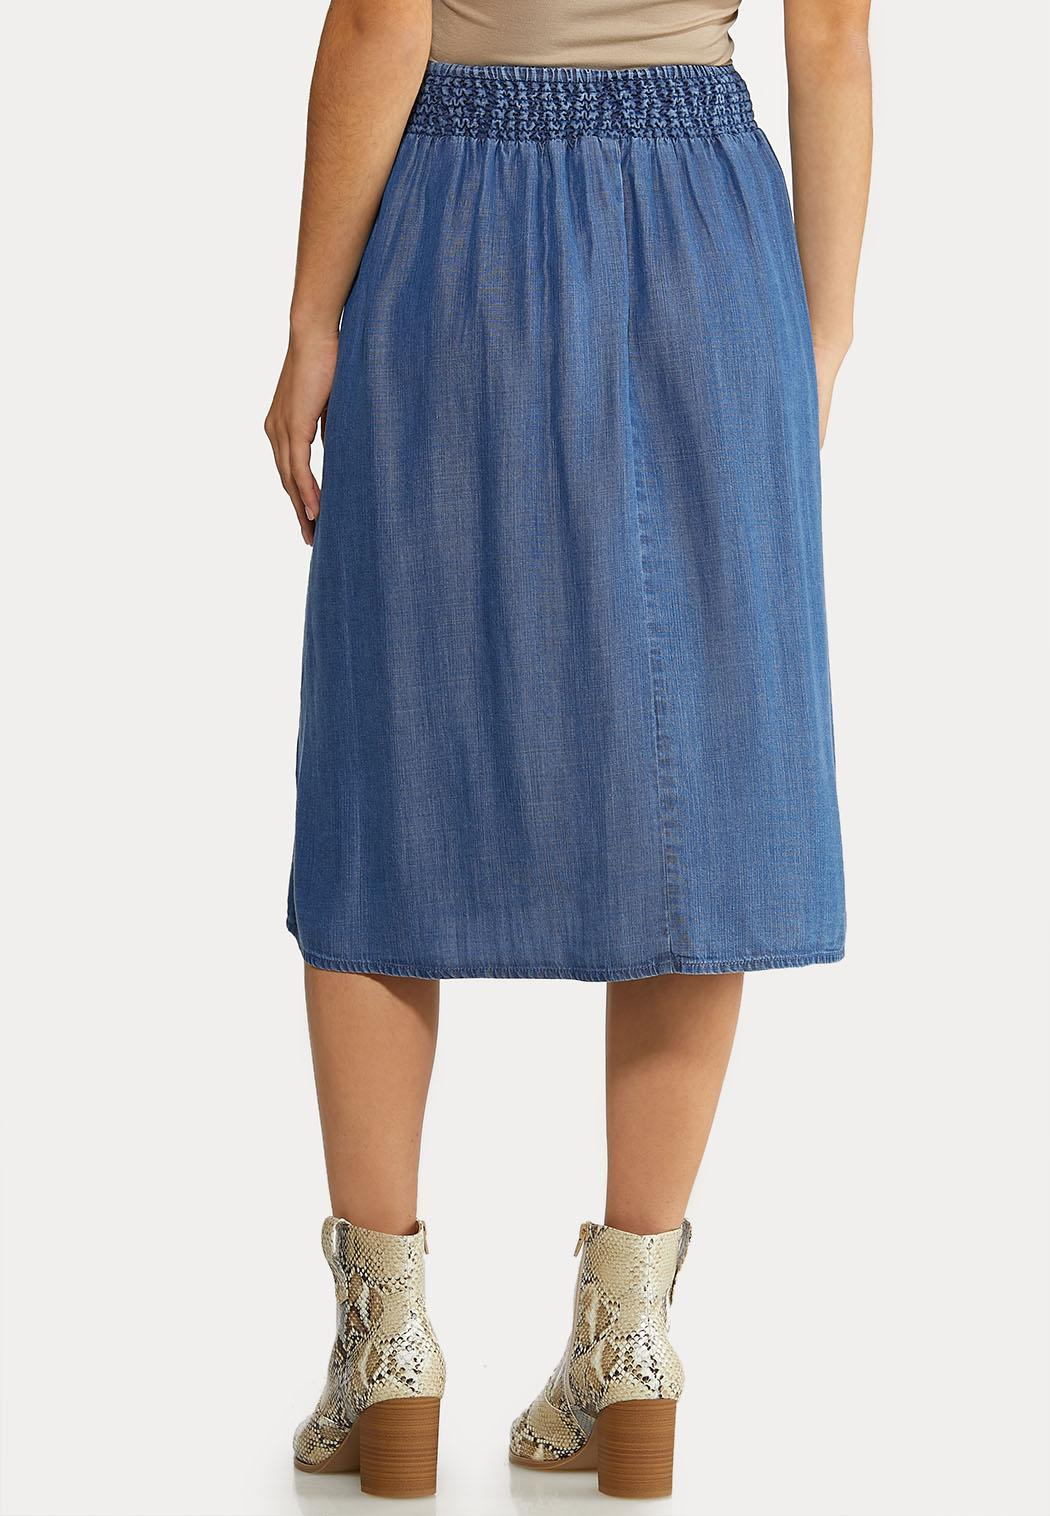 Chambray Button Down Skirt (Item #44070991)